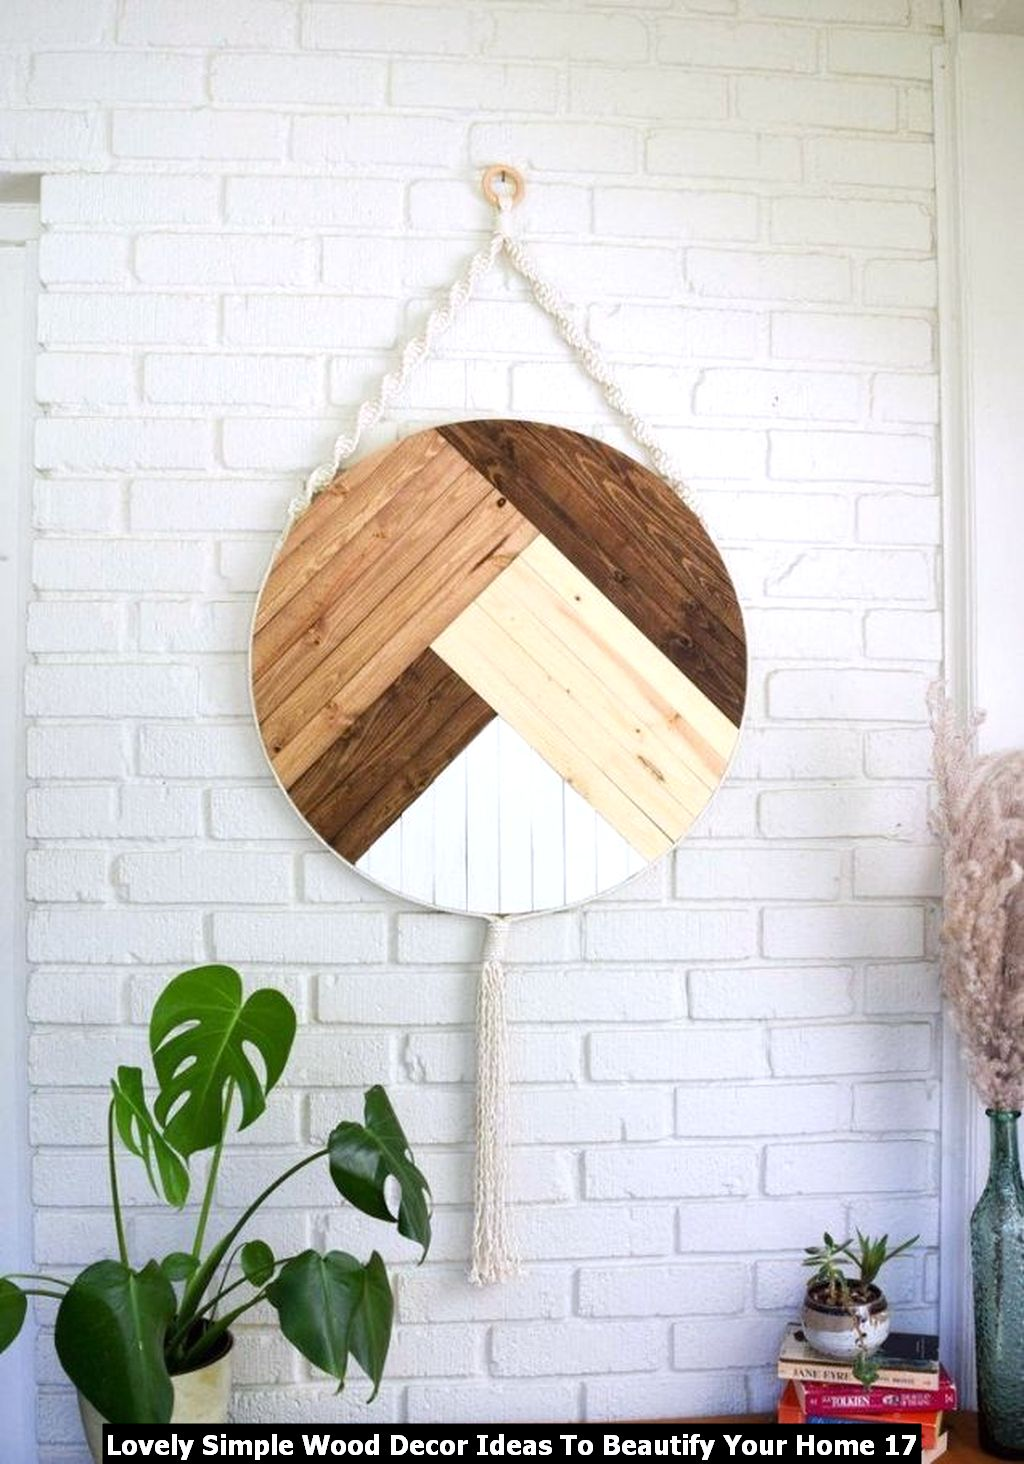 Lovely Simple Wood Decor Ideas To Beautify Your Home 17